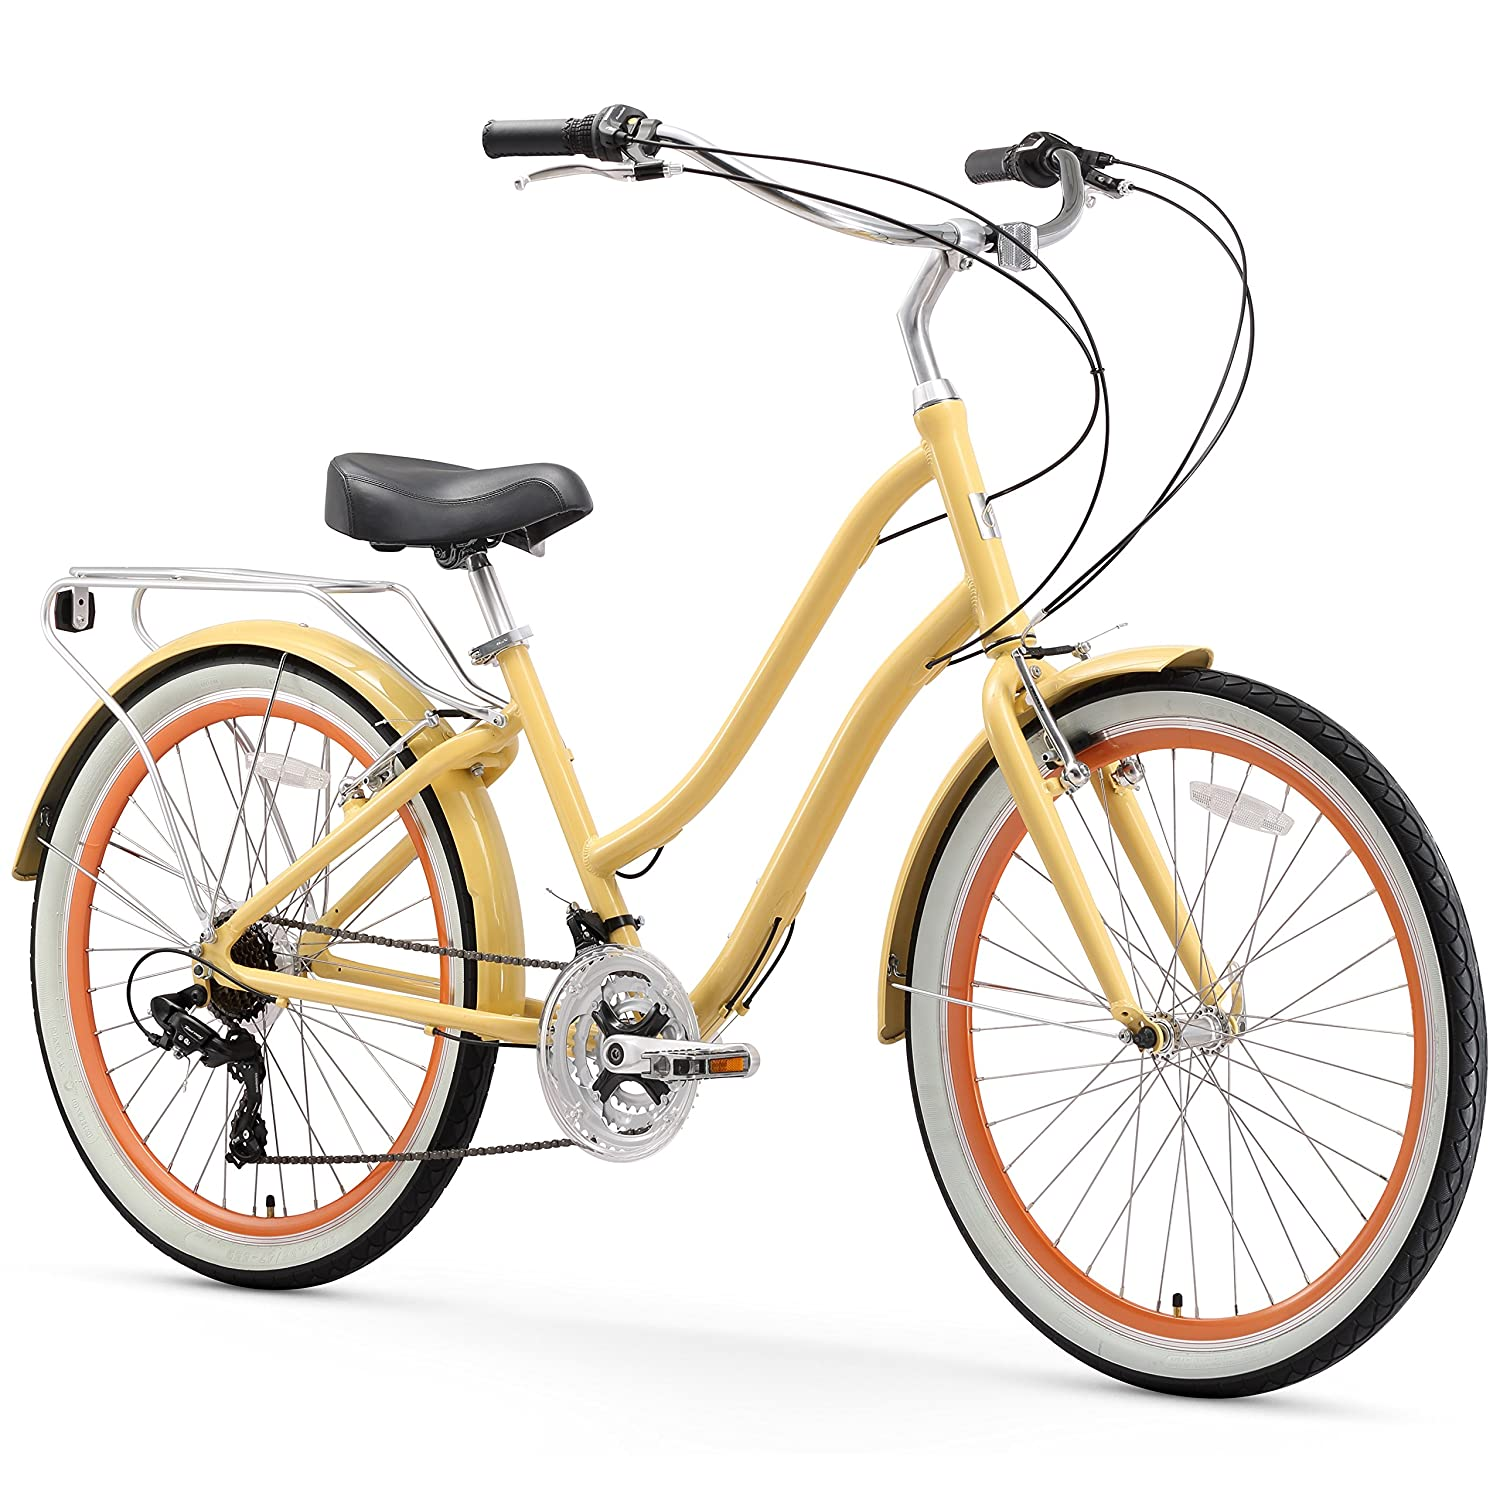 Sixthreezero EVRYjourney Step-Through Hybrid Cruiser Bicycle